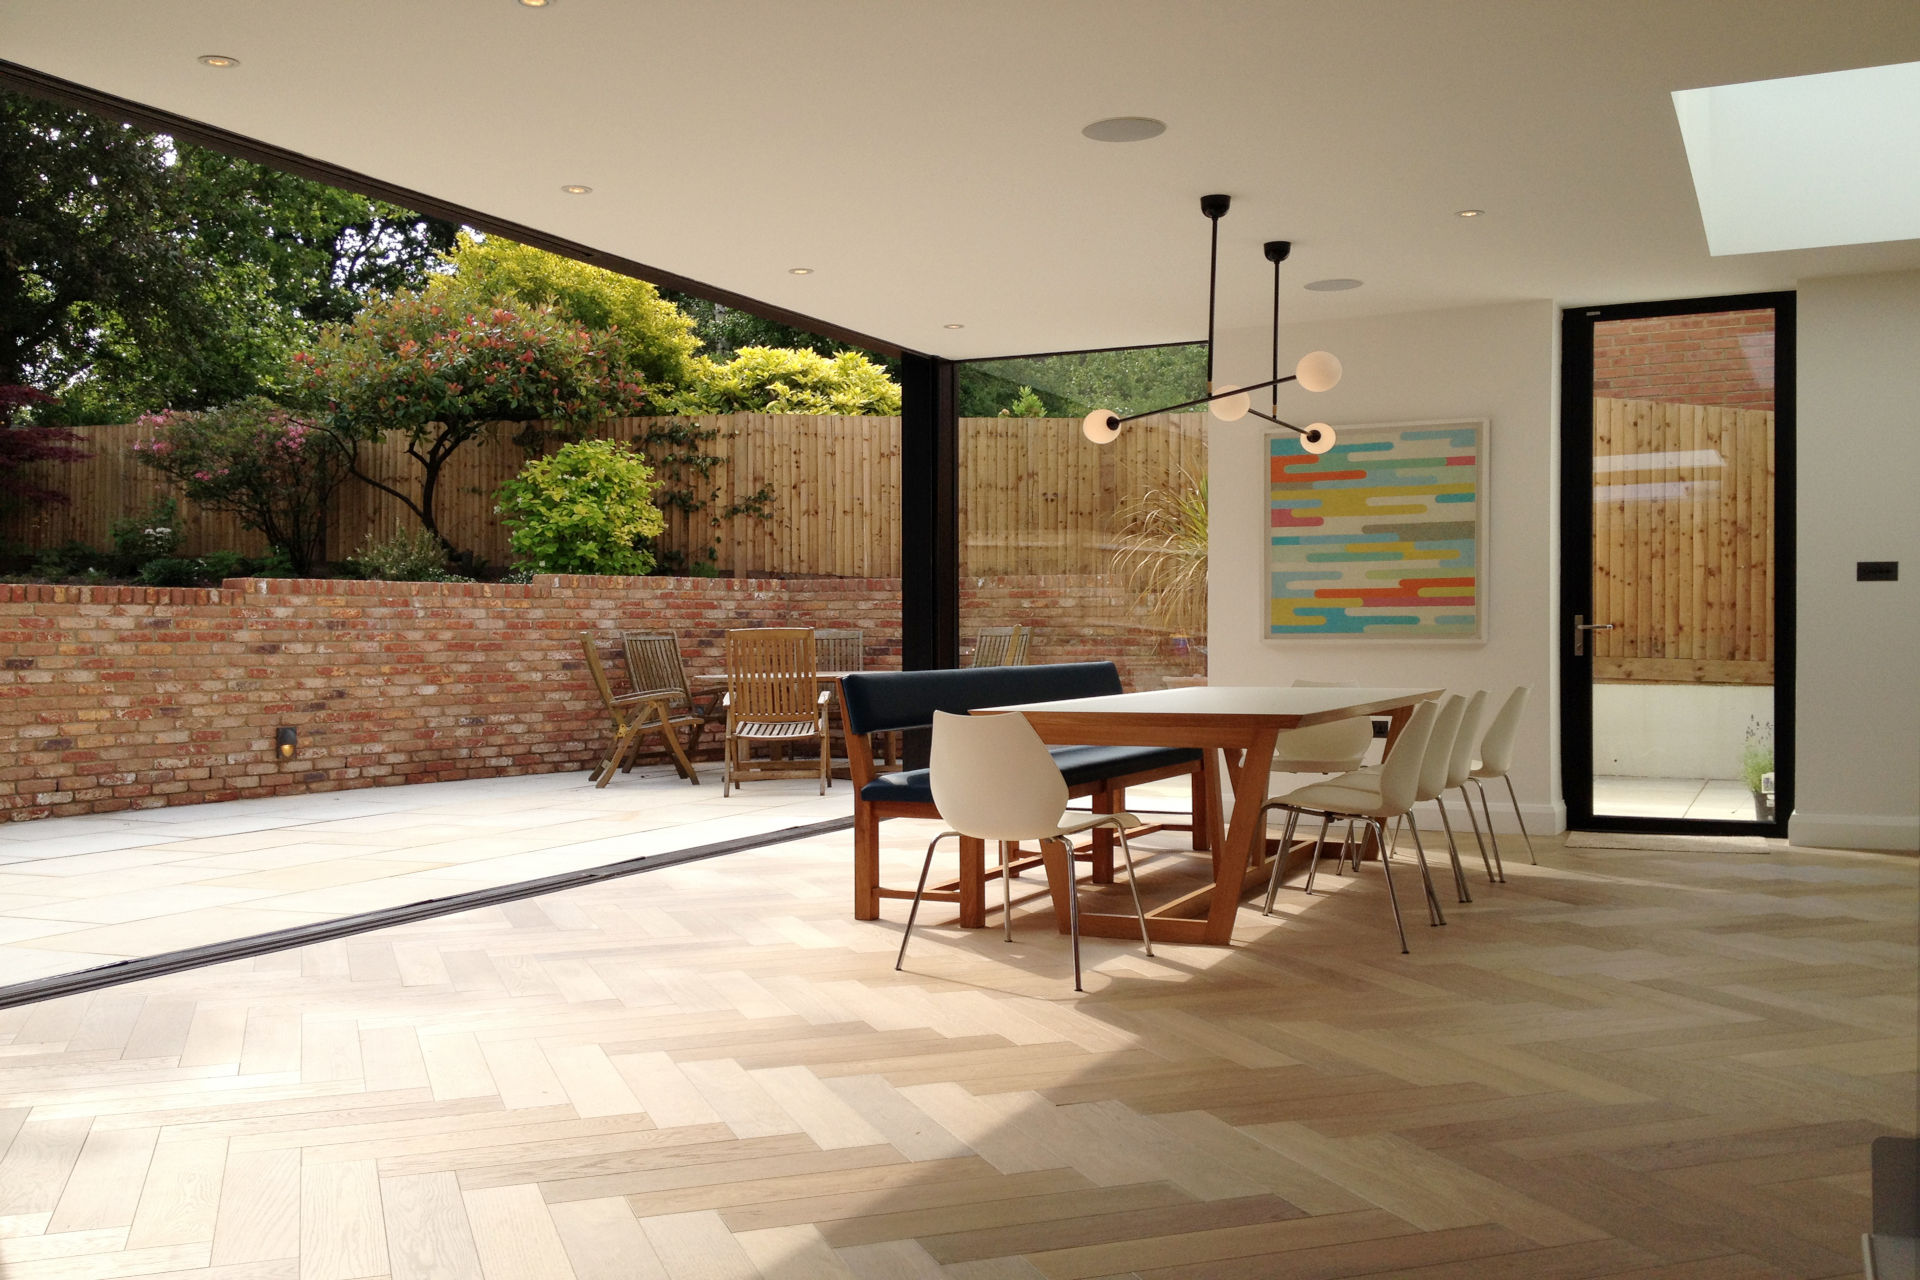 iq-glass-east-finchley-2pm-architects (1)